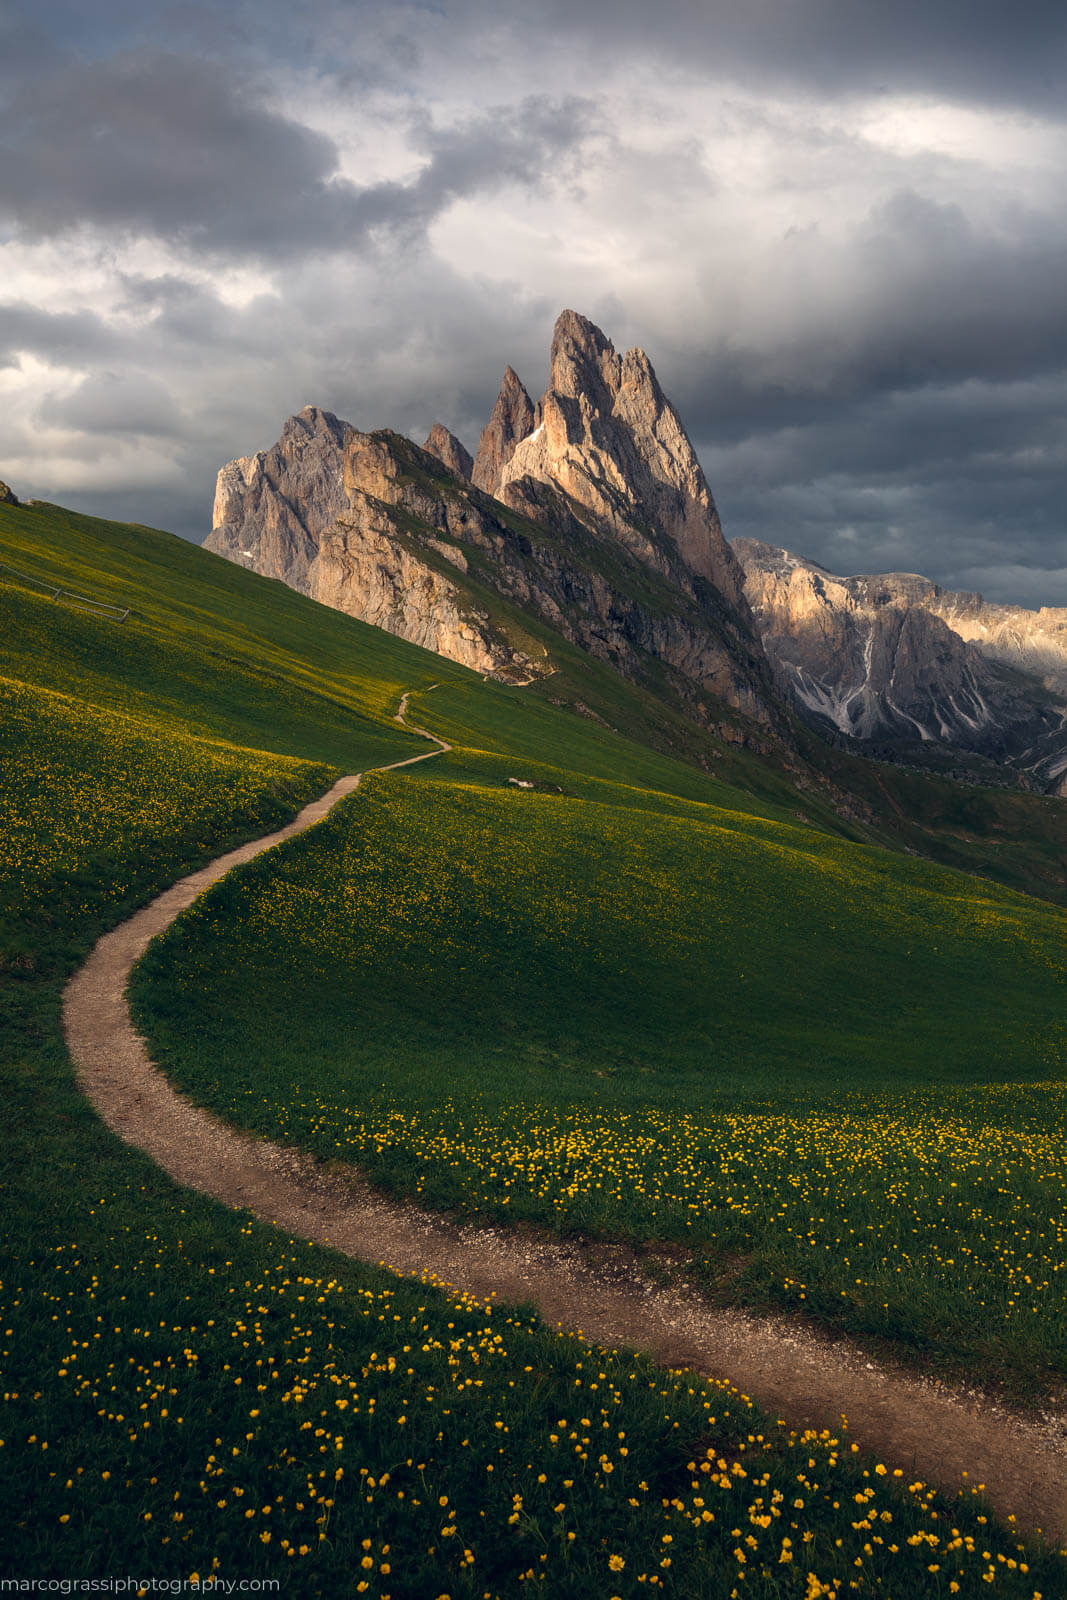 Flowers in Seceda during the summer Dolomites photo tour